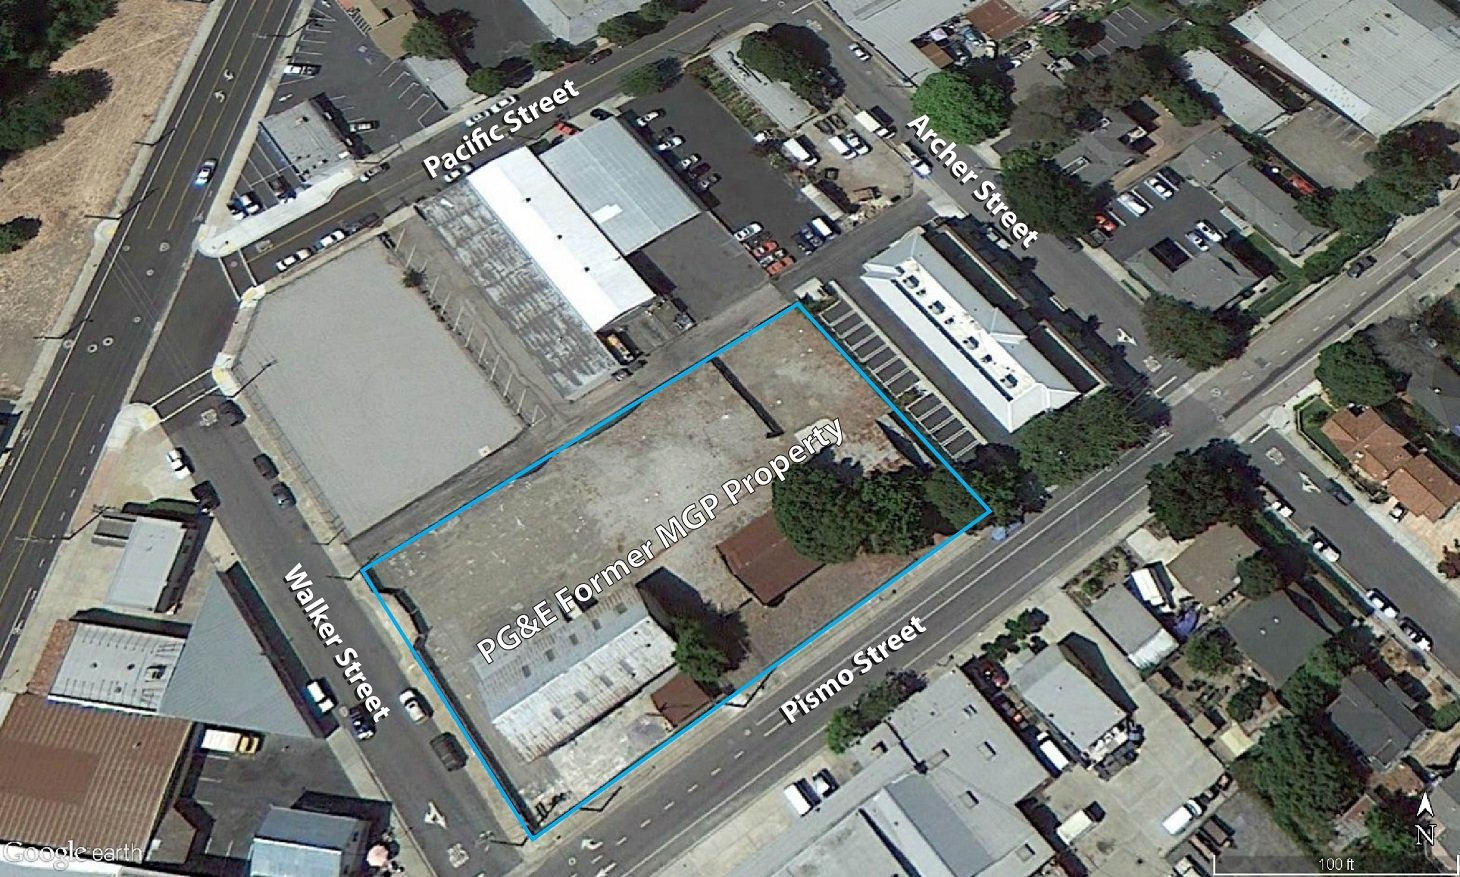 Aerial view of property where work took place.